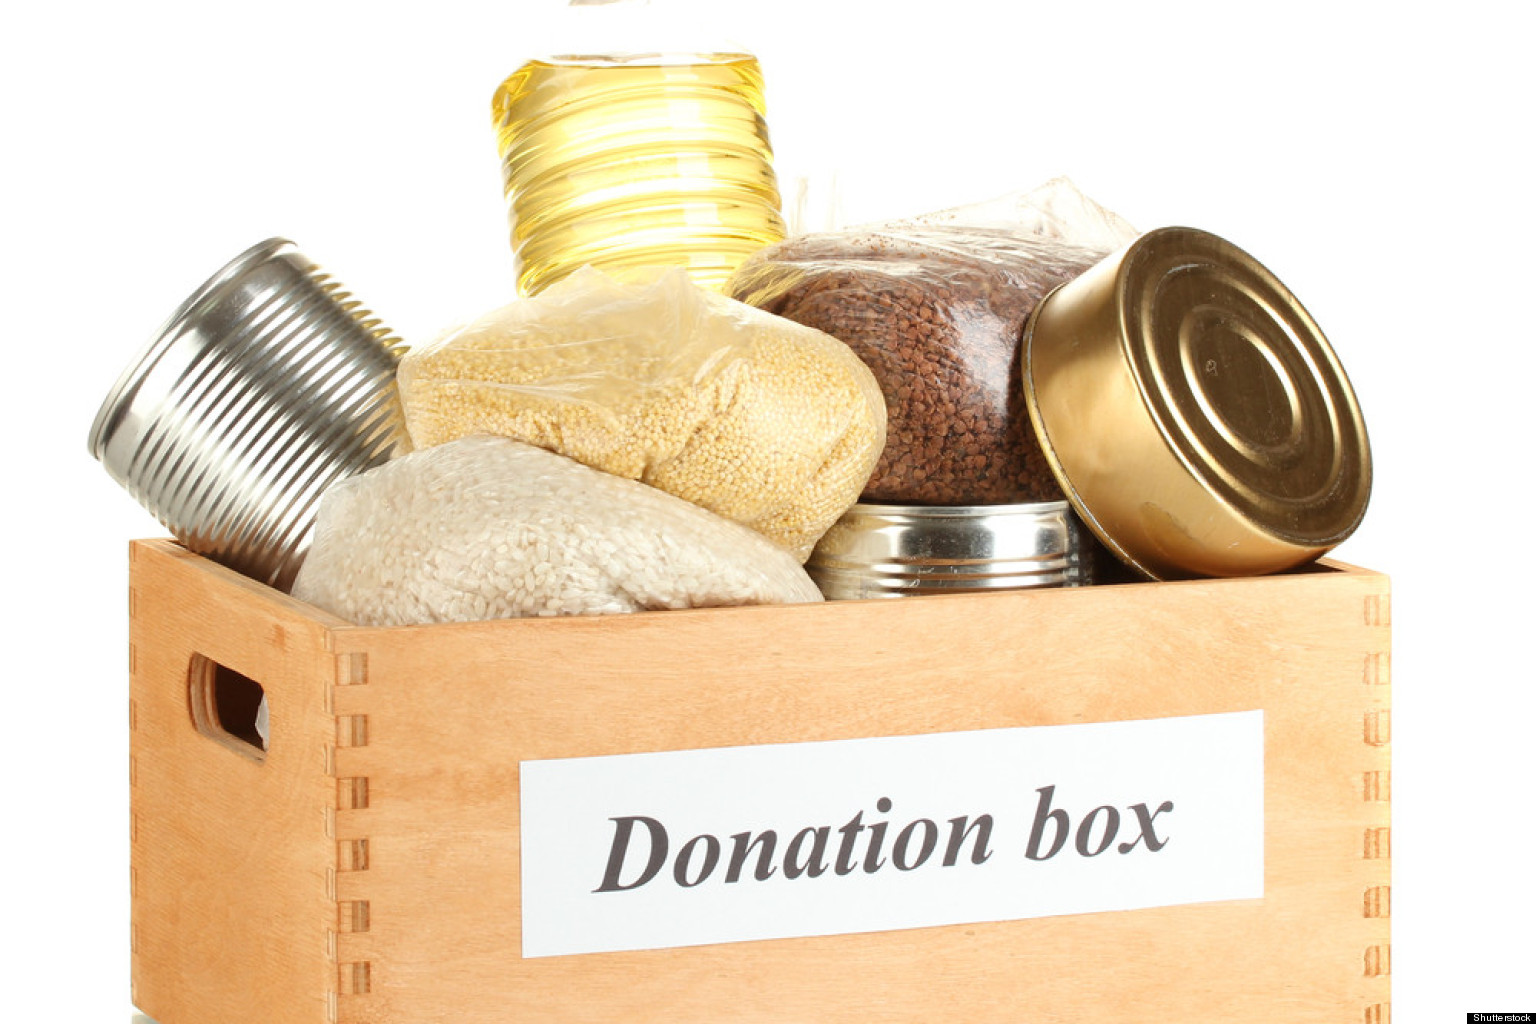 Food Banks Are No Longer Just a Temporary Solution ...